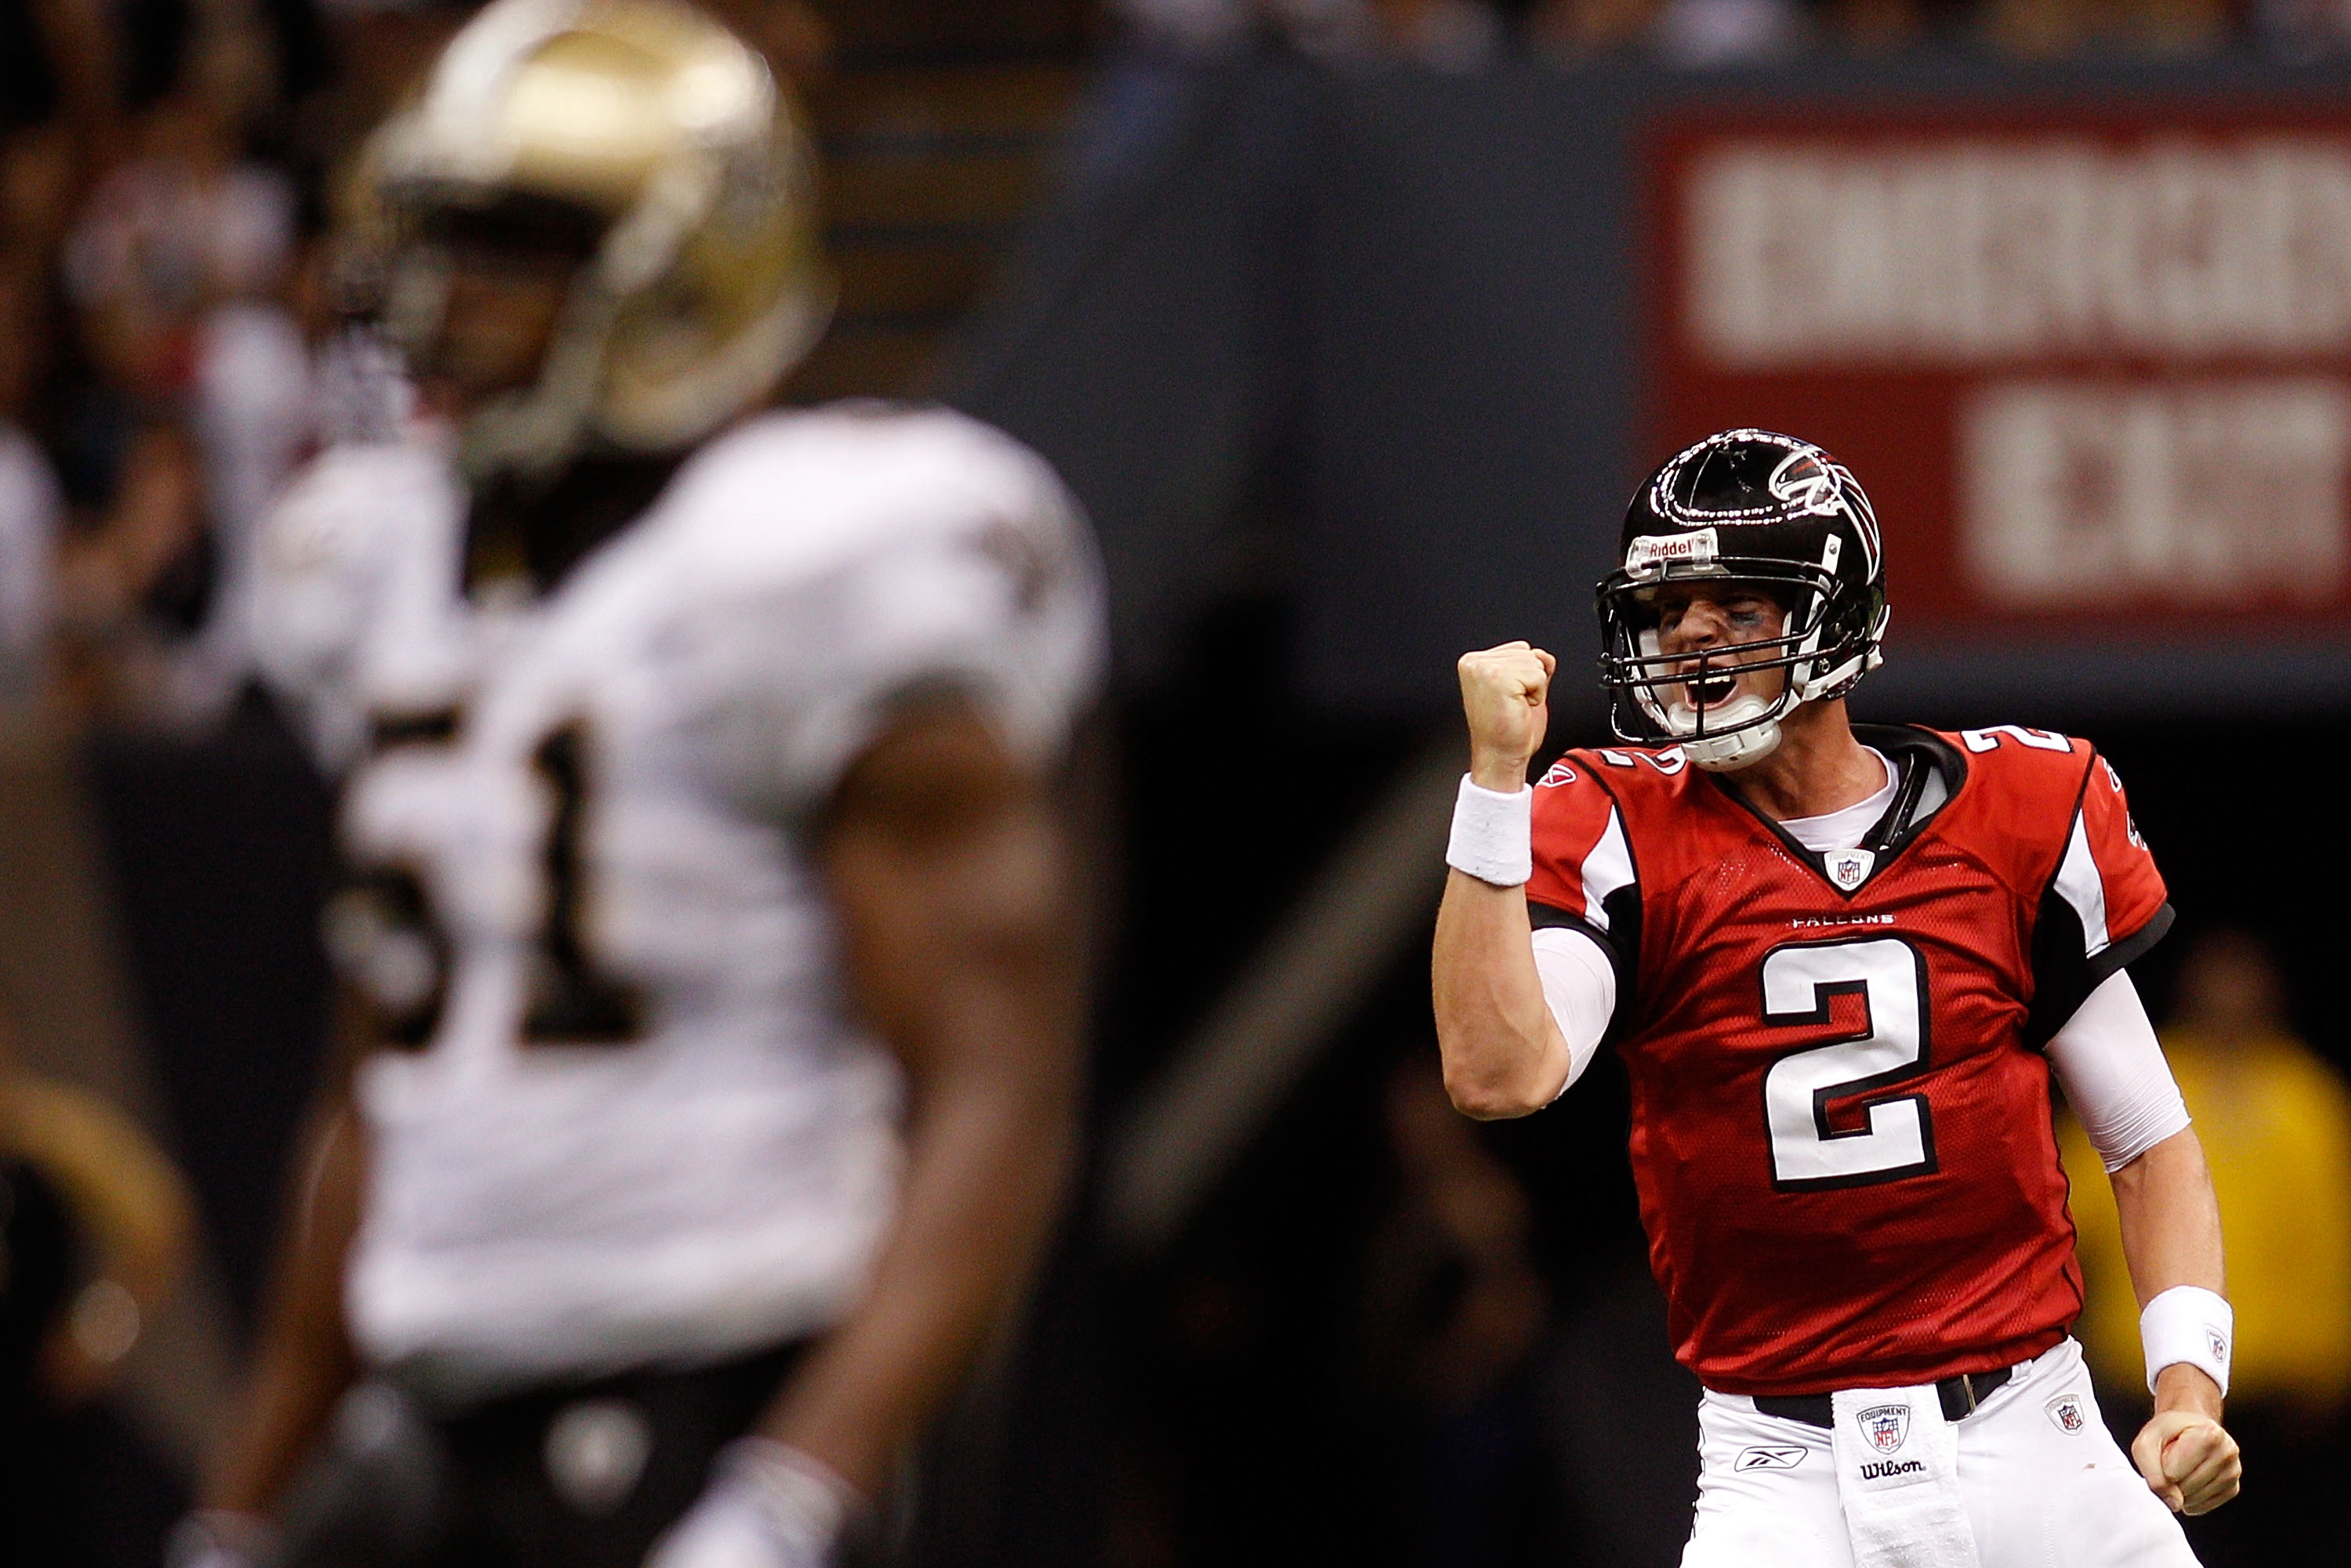 If the Falcons do what Falcons do, Matt Ryan and the Atlanta Falcons will be celebrating a number one seed and homefield advantage throughout the playoffs Monday night in the Georgia Dome